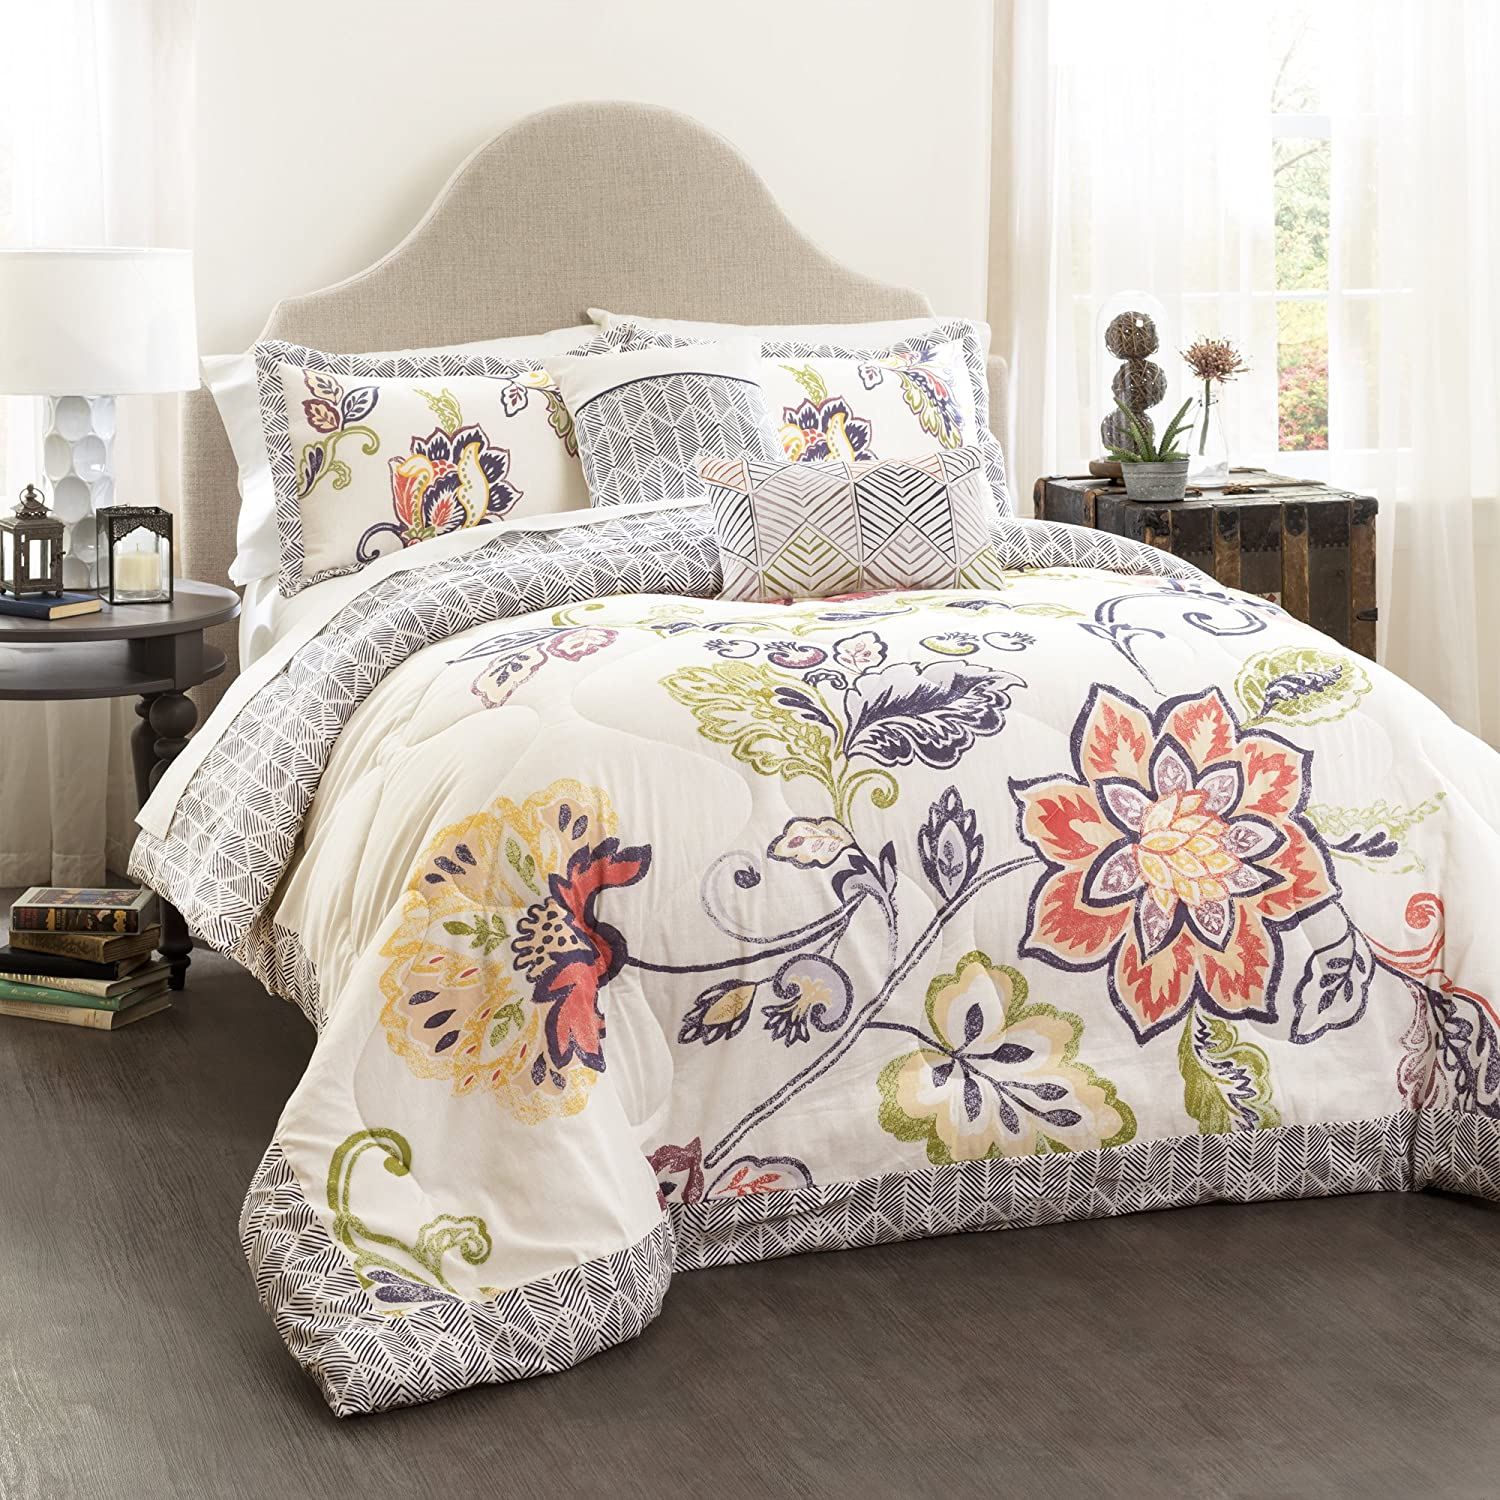 Amazon.com: Lush Decor 5 Piece Aster Quilted Comforter Set, King ...